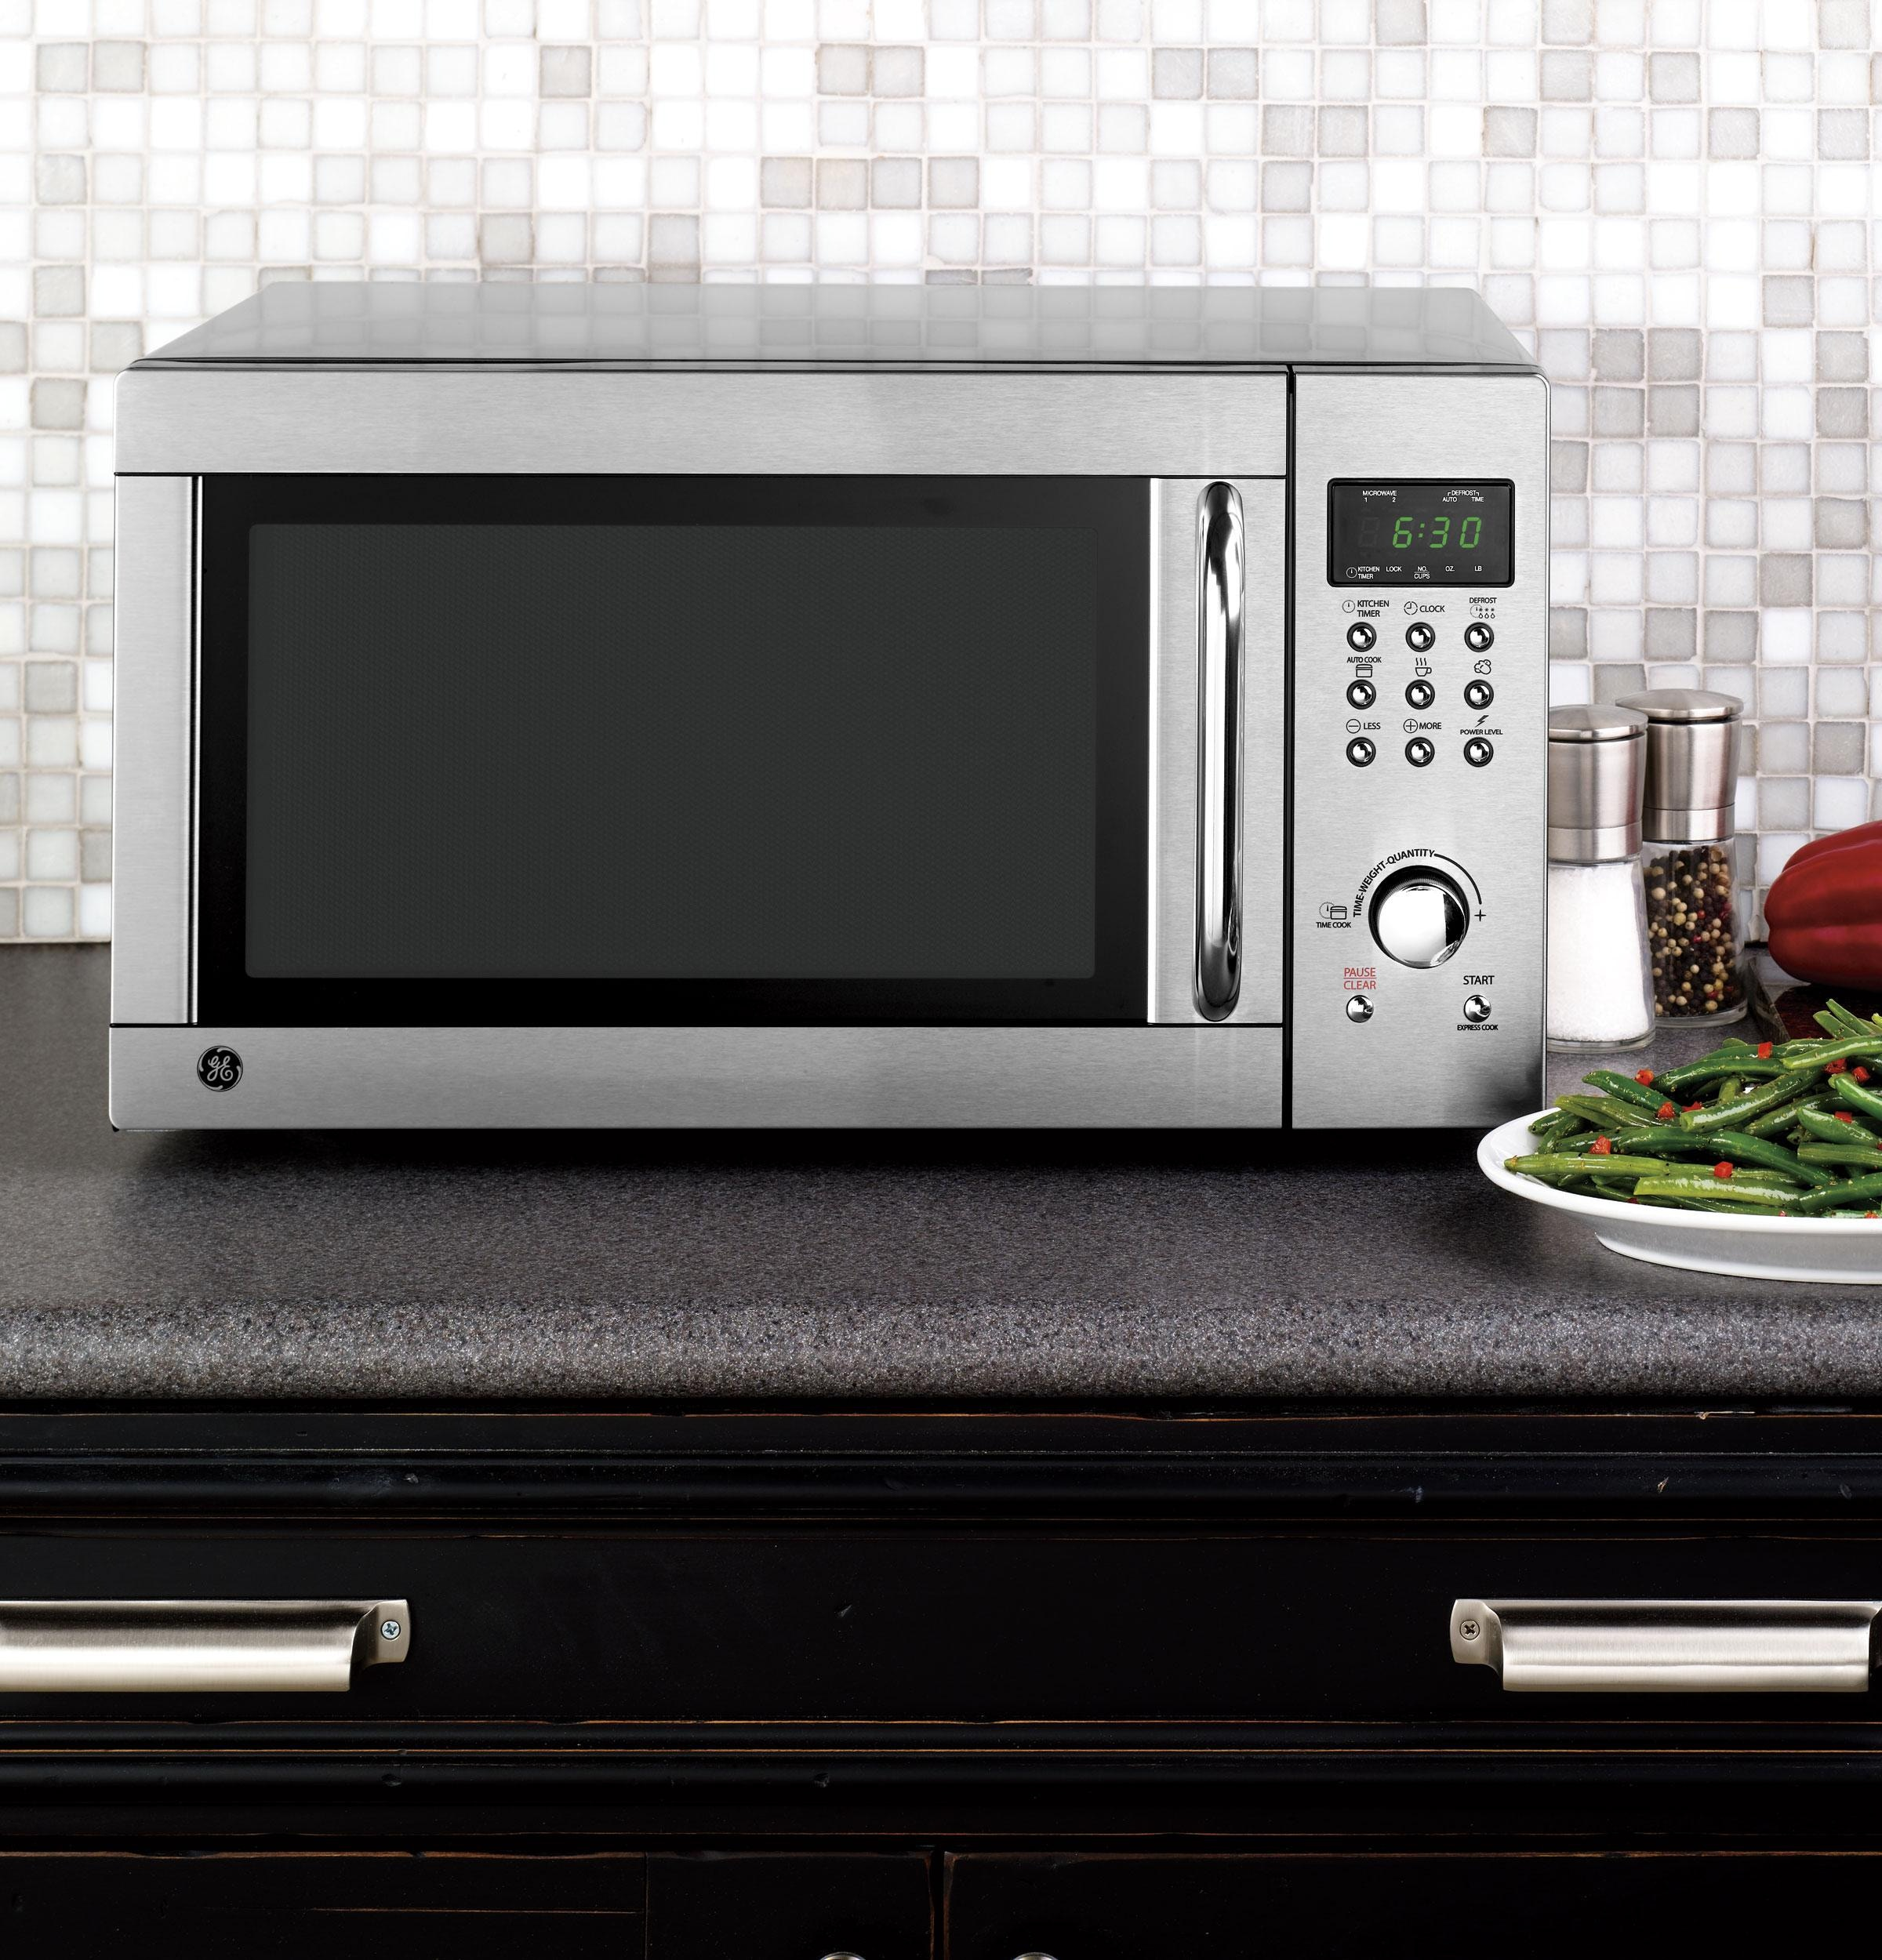 general electric kitchen countertop microwave oven - General Electric Microwave